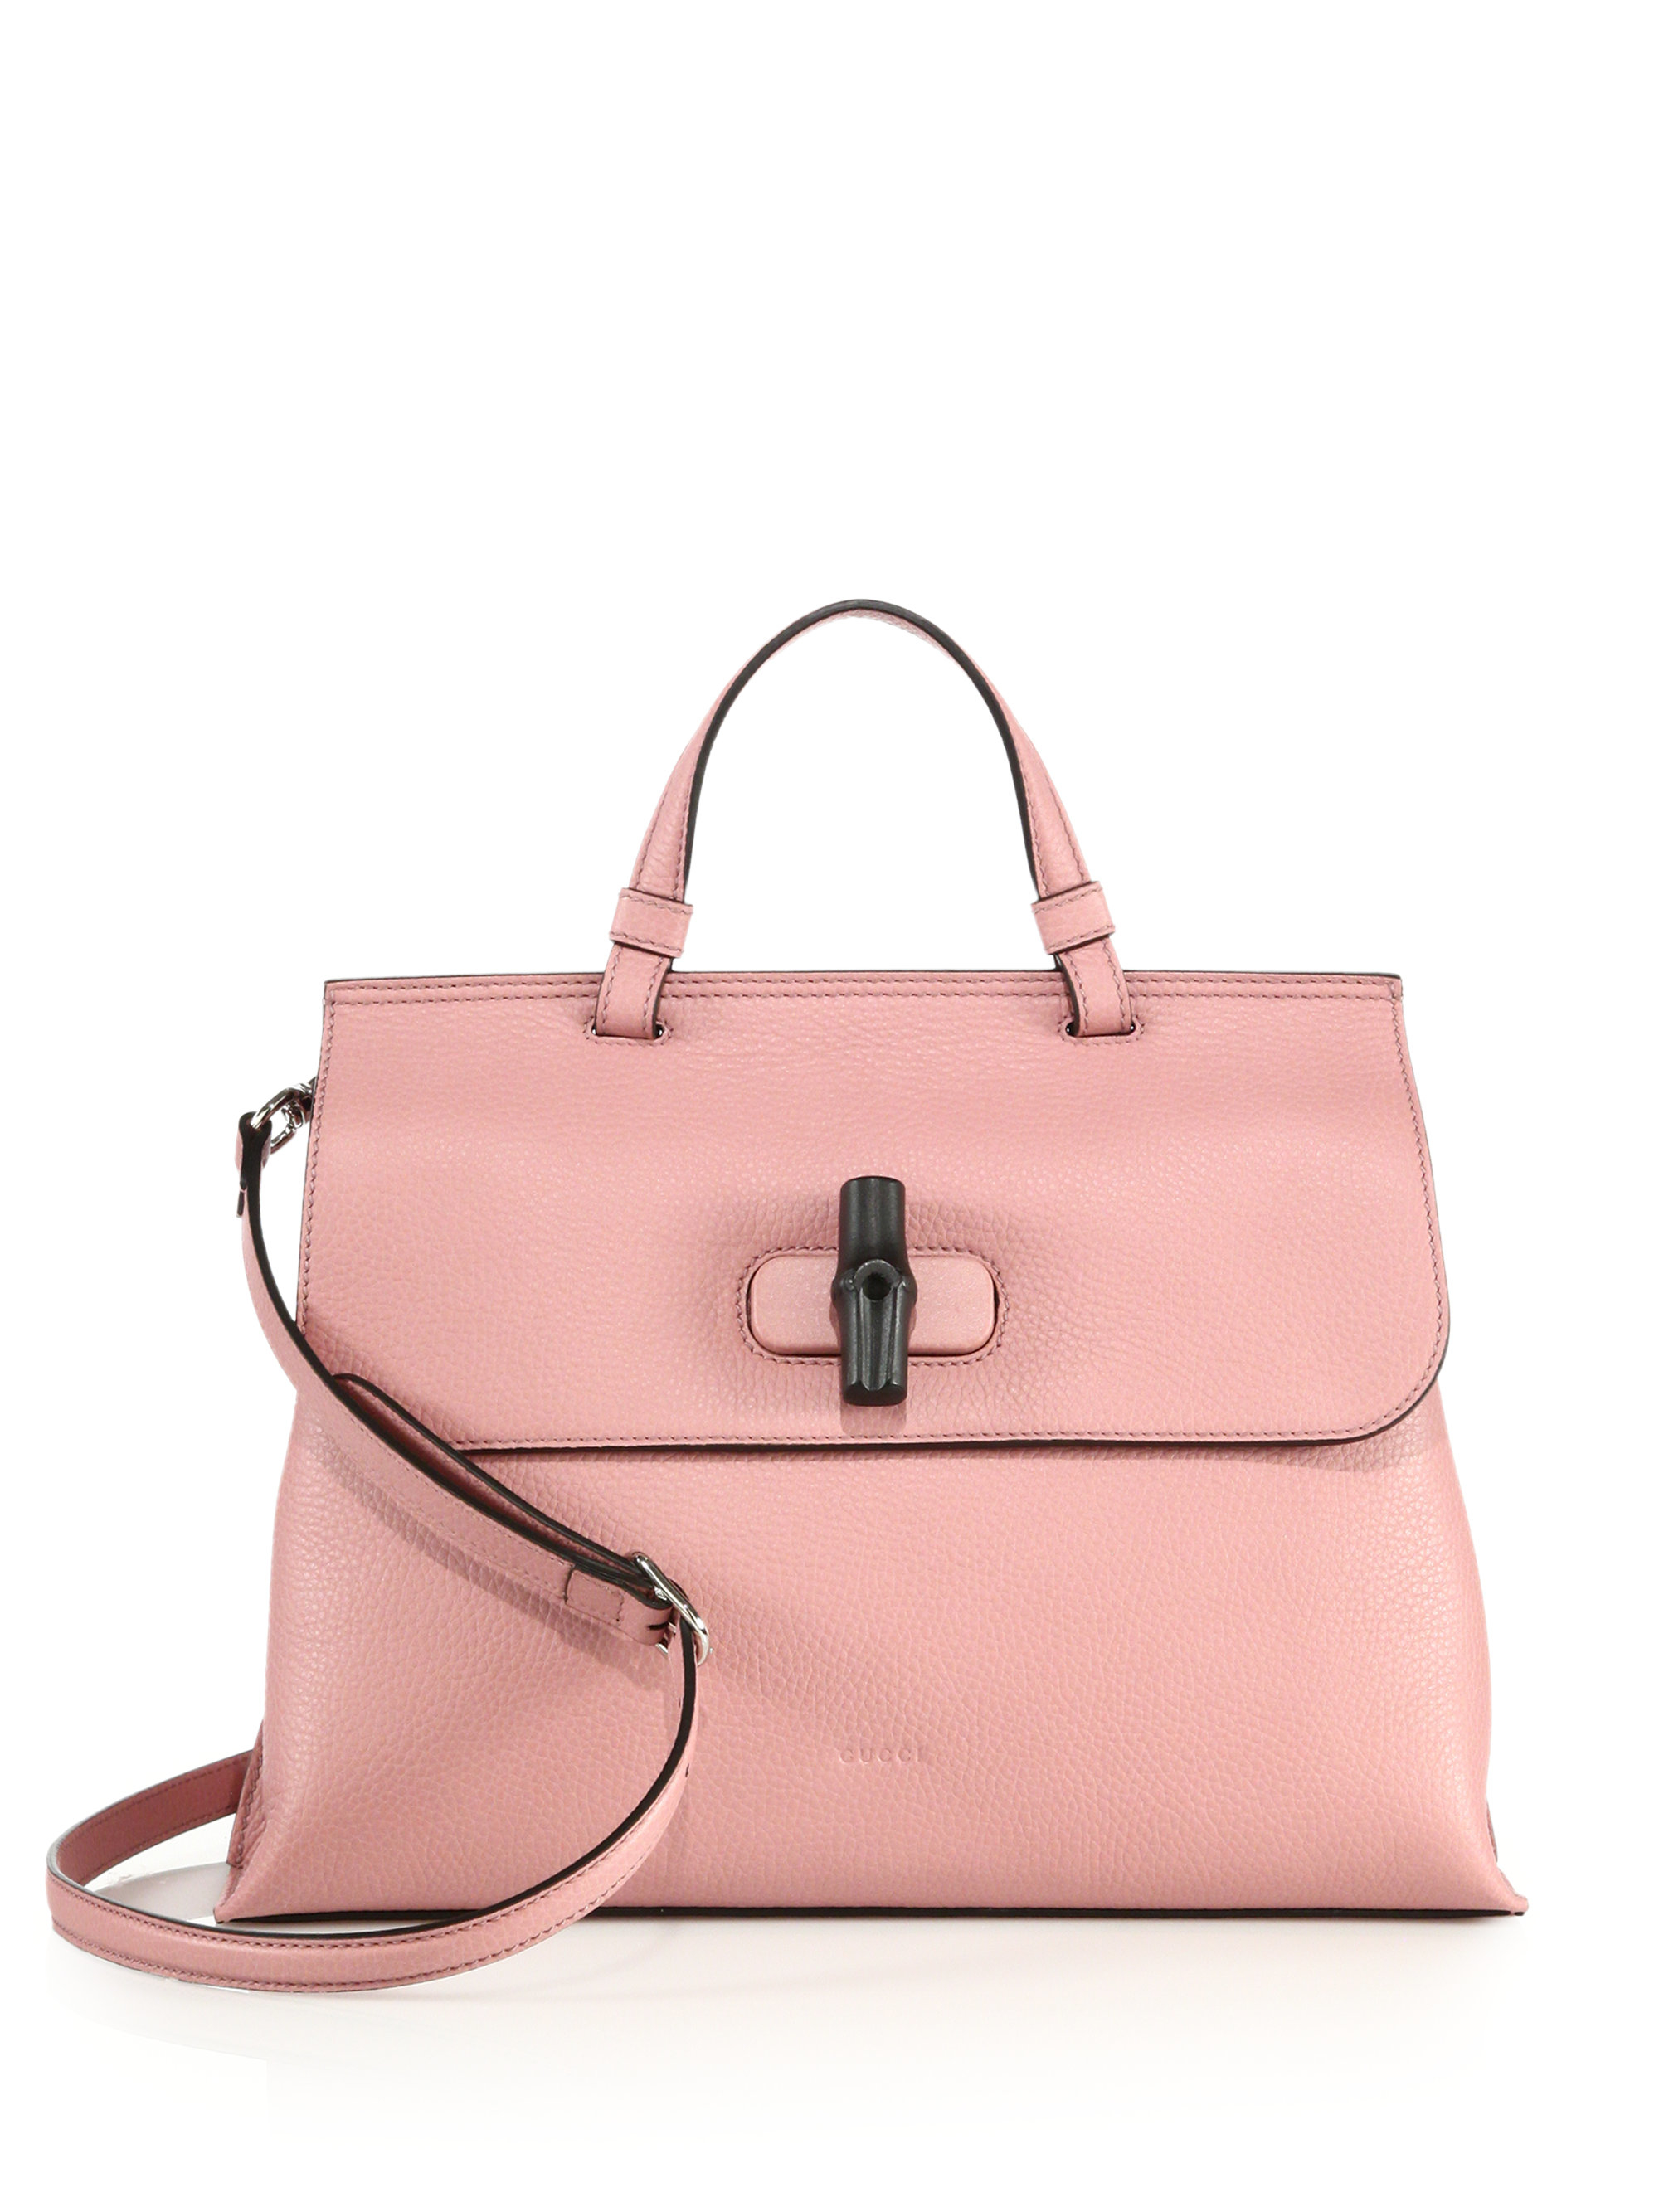 Lyst Gucci Bamboo Daily Leather Top Handle Bag In Pink